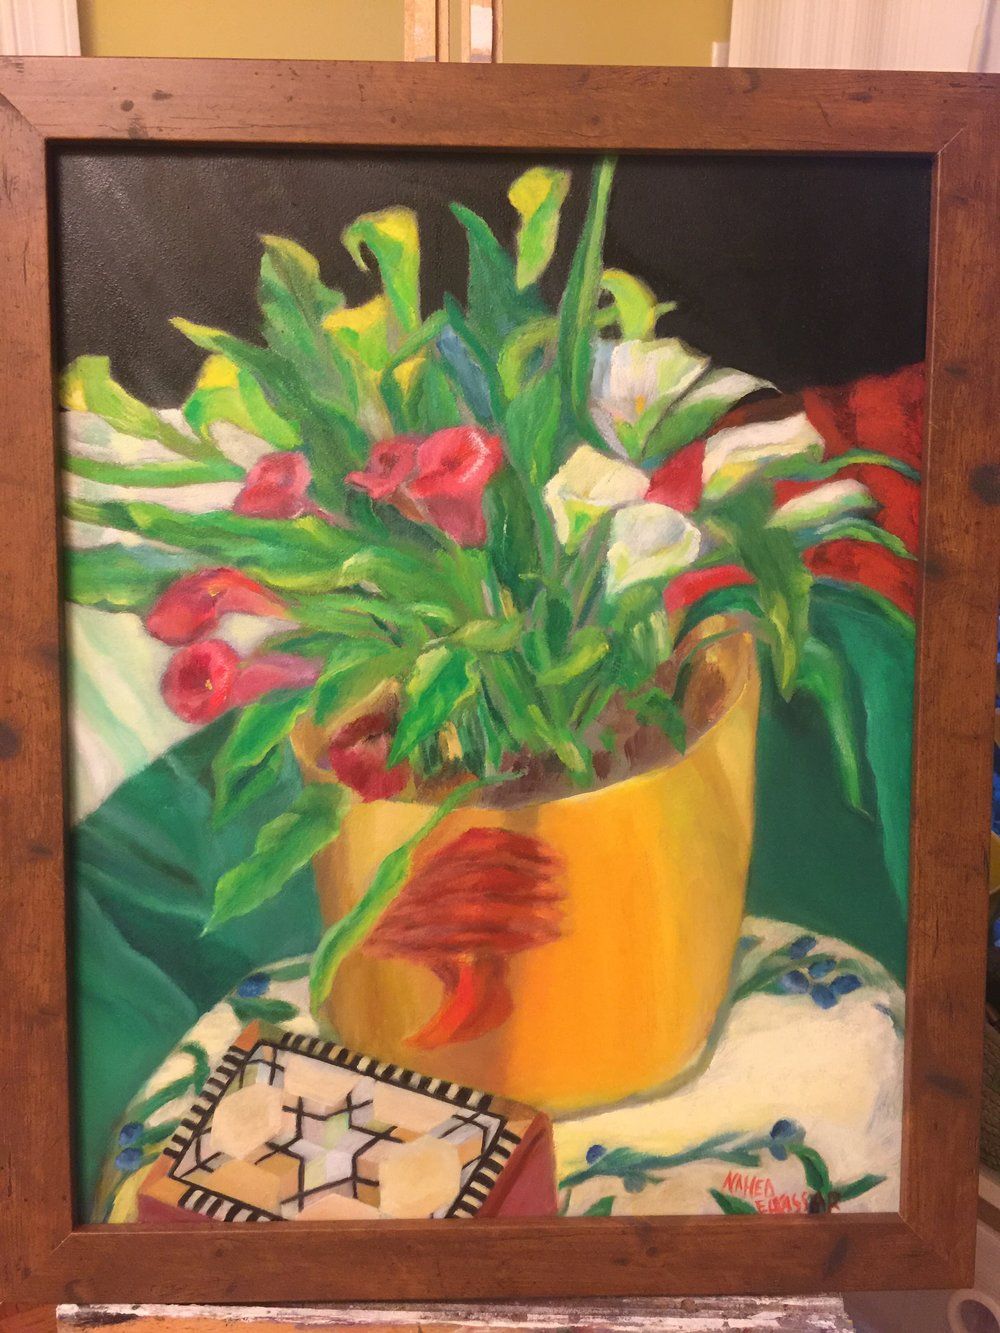 Inspired after the charitable iftar, Nahed created a painting highlighting symbols of the Palestinian diaspora and refugee experience, including a Palestinian flag, a vase with a Lebanese cedar, and a mother of pearl mosaic as a symbol of Syria.